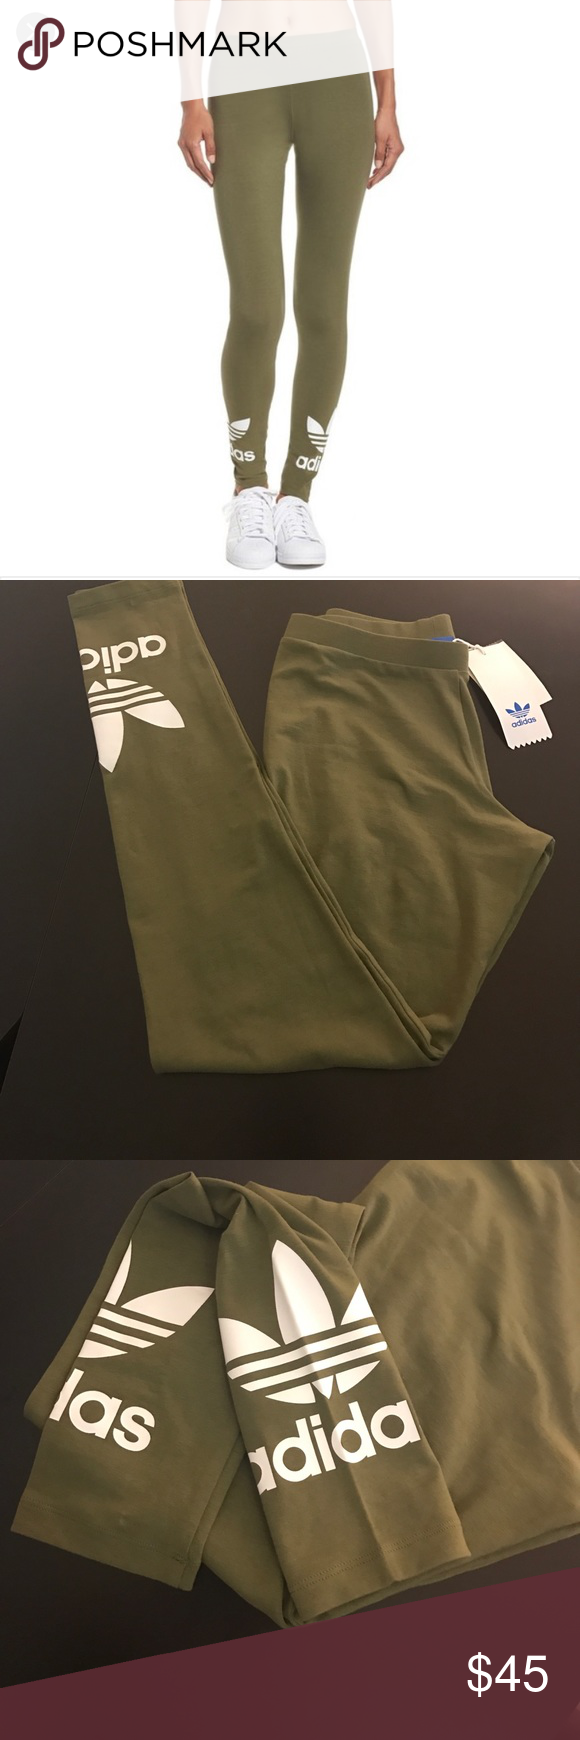 b7d40434d7e9f adidas trefoil leggings Adidas trefoil leggings new with tags size xs color olive  green. NO TRADES adidas Pants Leggings